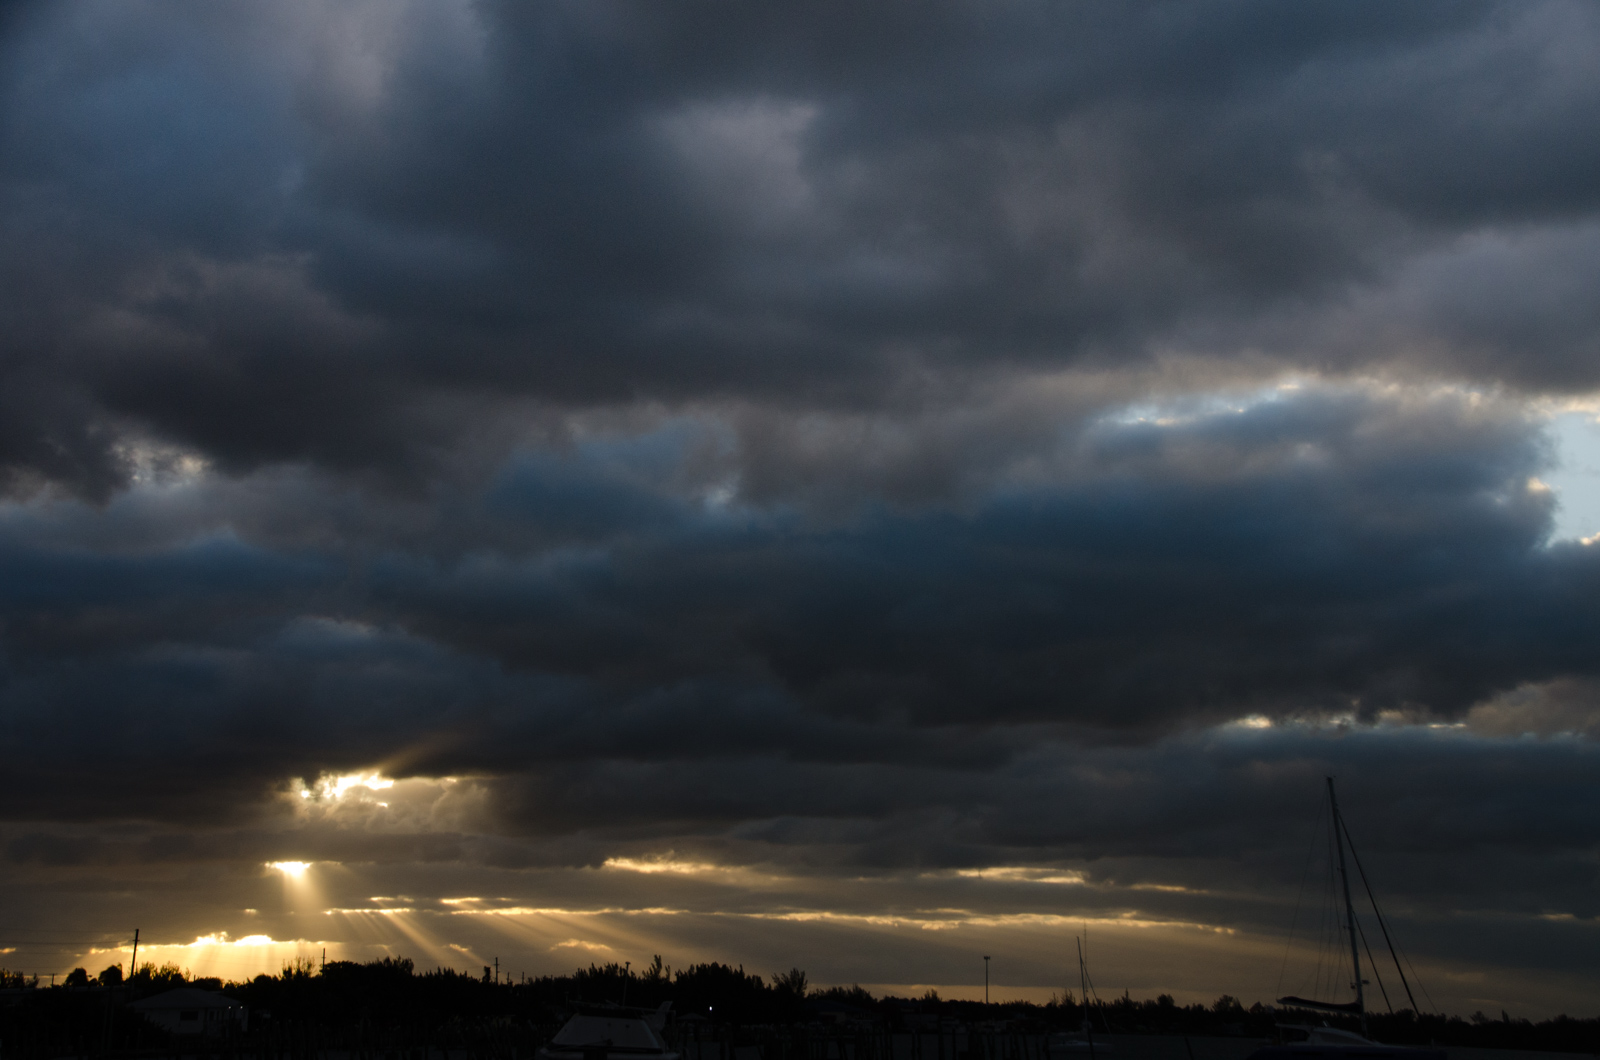 The sun put on an impressive attempt at busting through tonight's impressive cloud cover.